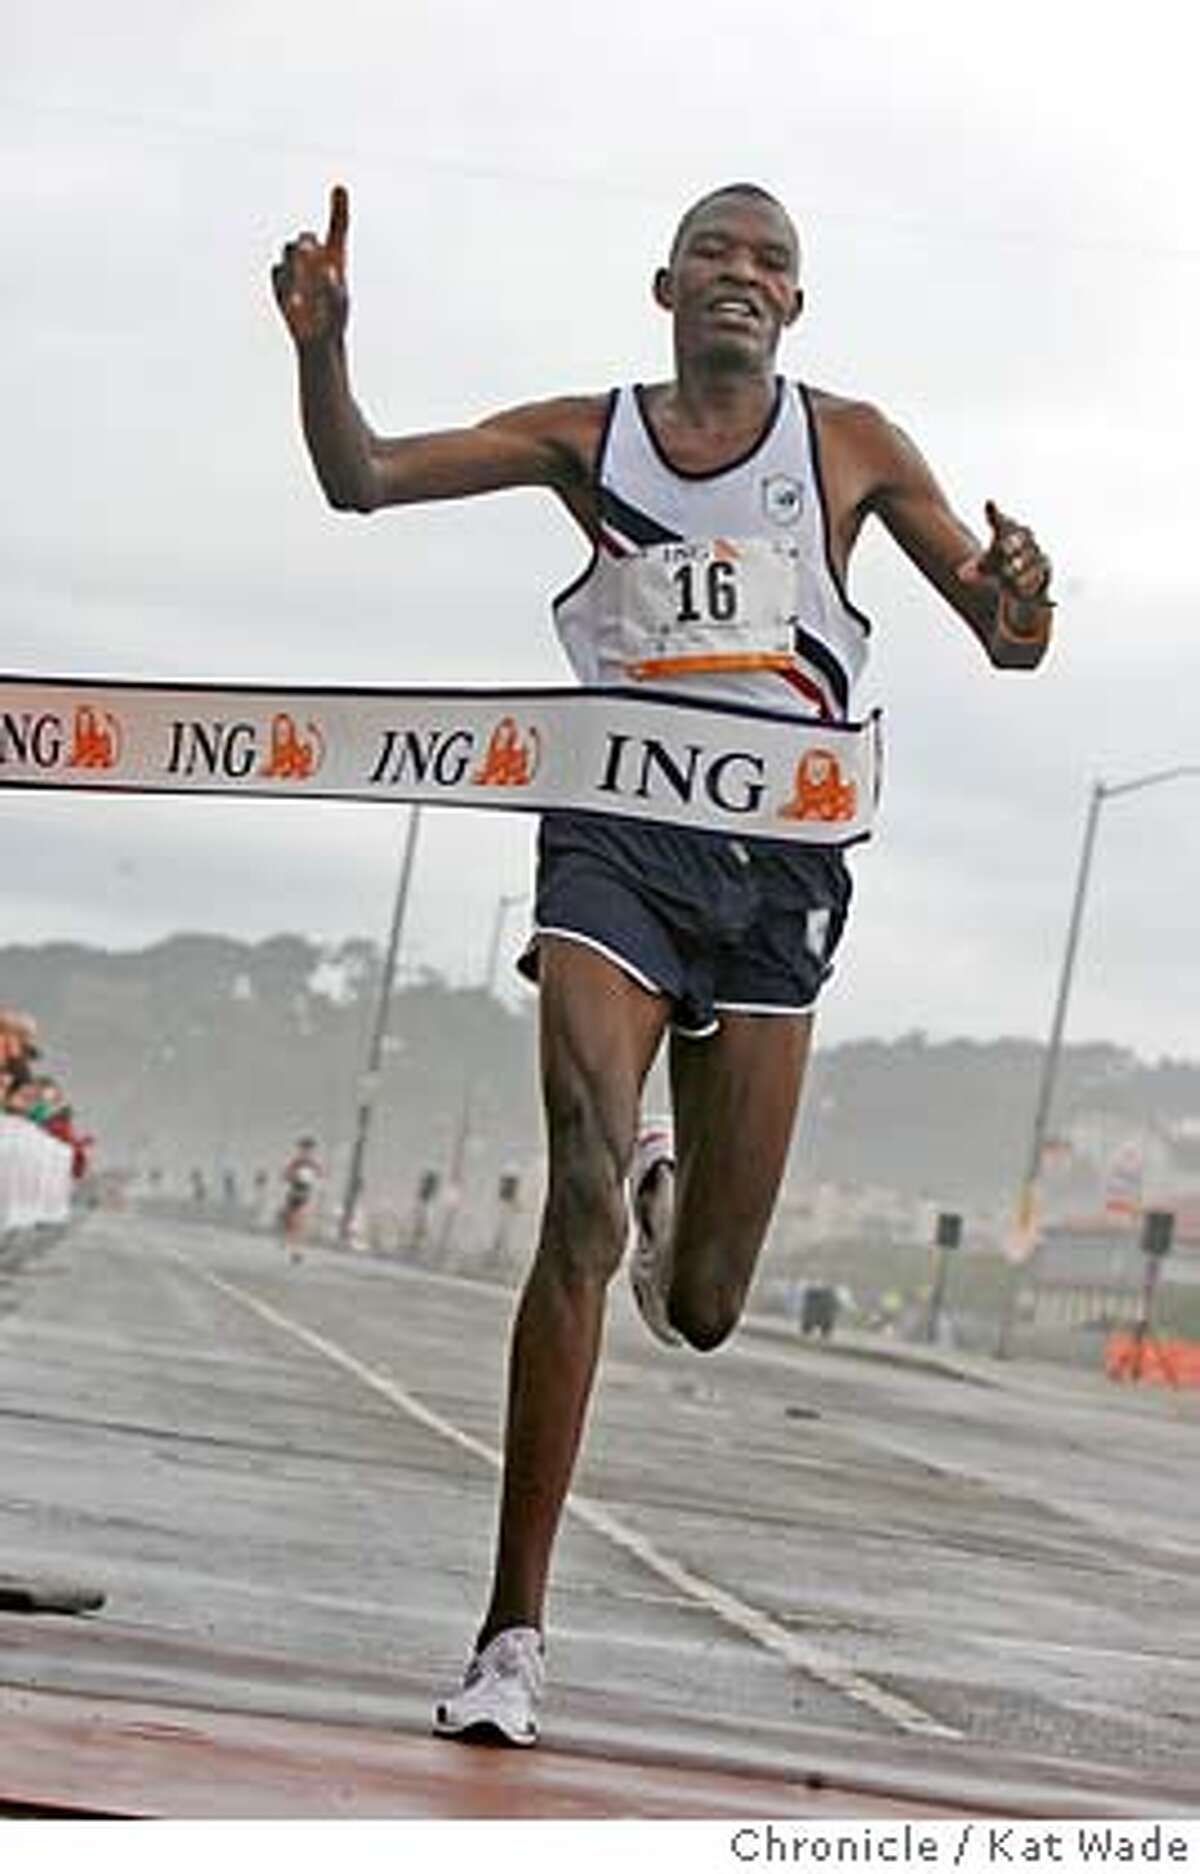 The defending champion, Gilbert Okari from Kenya takes first place in the Bay to Breakers as he crosses the finish line on the Great Highway at Ocean Beach about 35 minutes after the start of the 95th Annual Bay to Breakers race Sunday May 21, 2006. (Kat Wade/The Chronicle) ** Gilbert Okari cq